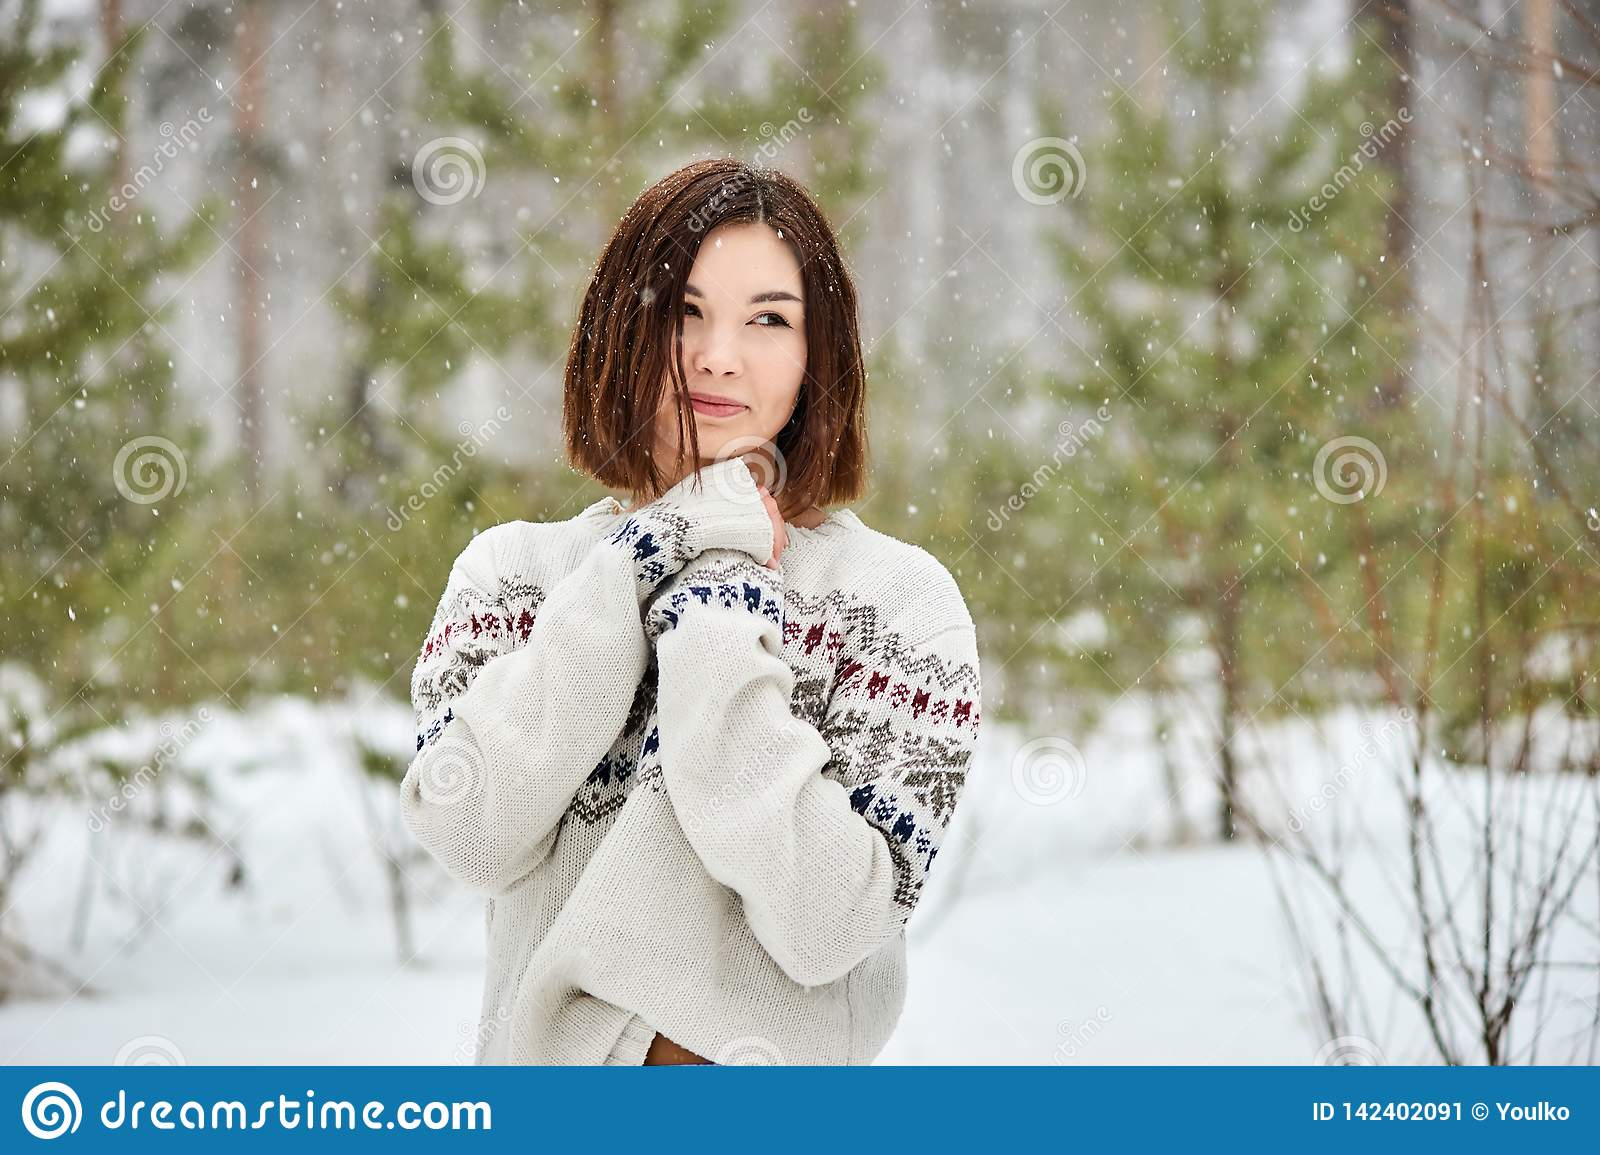 Teenage girl in the winter forest. Snowfall